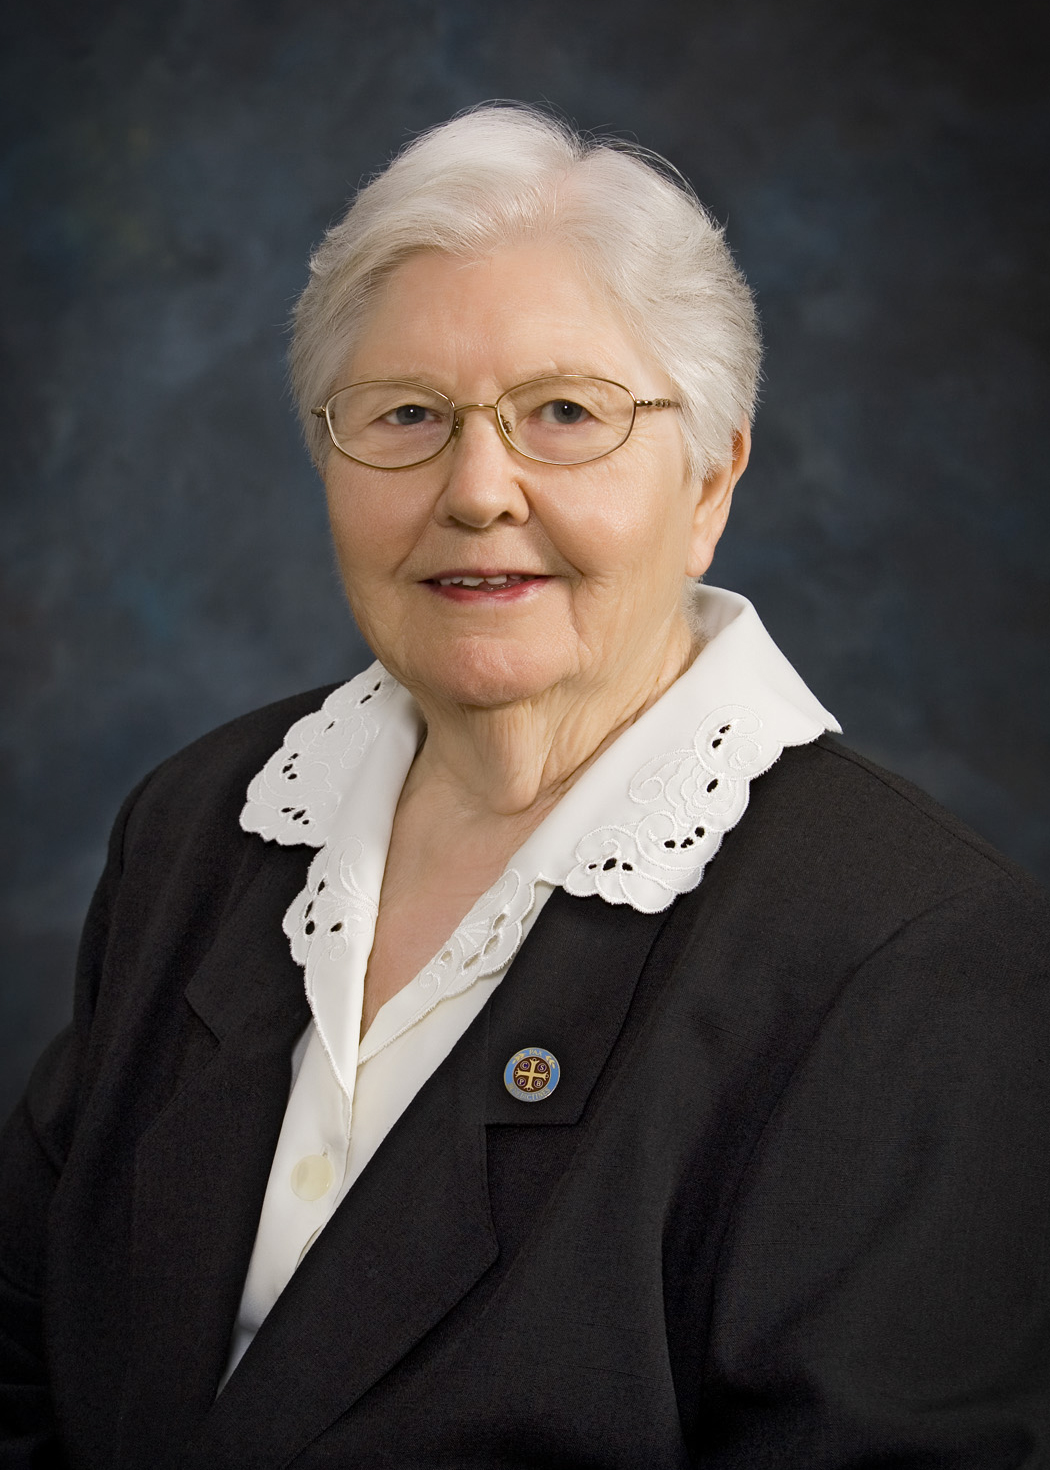 Sister Helen Maurer of Monastery Immaculate Conception in Ferdinand